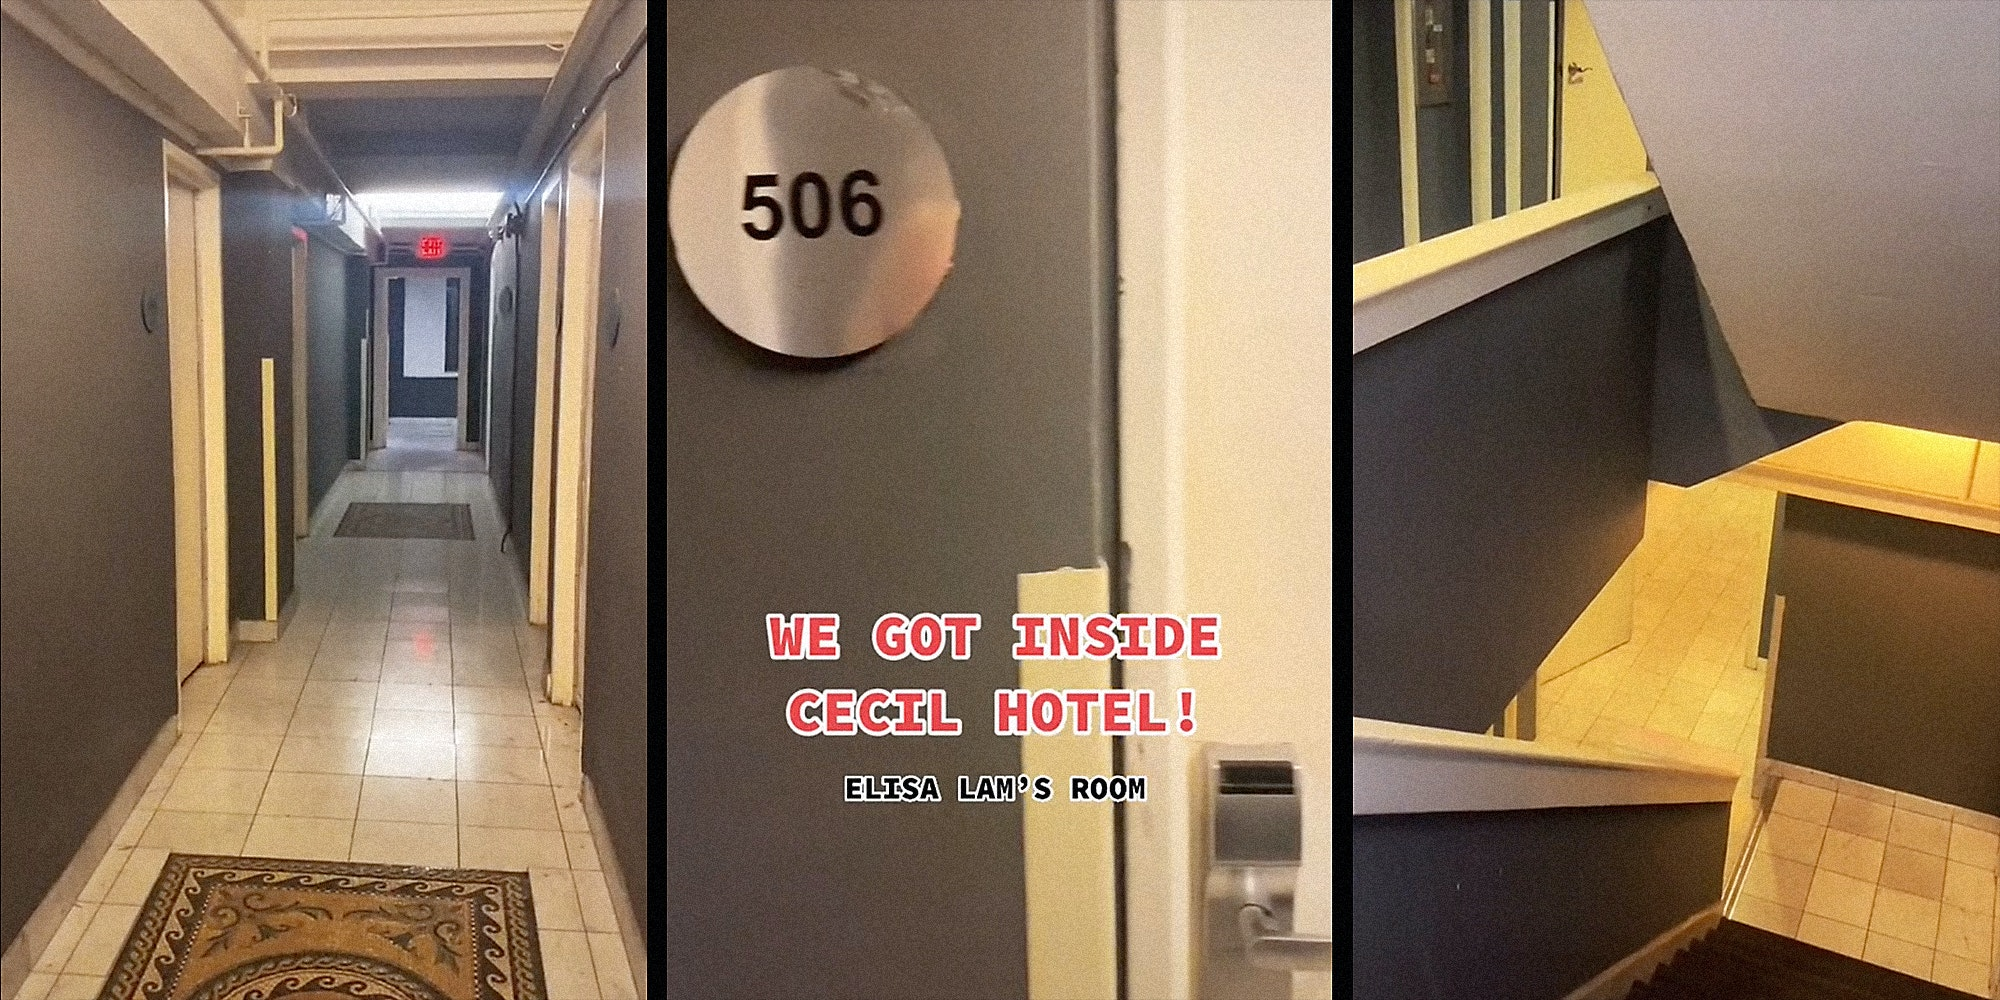 """hotel hallway (l) hotel room 506 with """"we got inside cecil hotel! elisa lam's room"""" (c) stairwell (r)"""